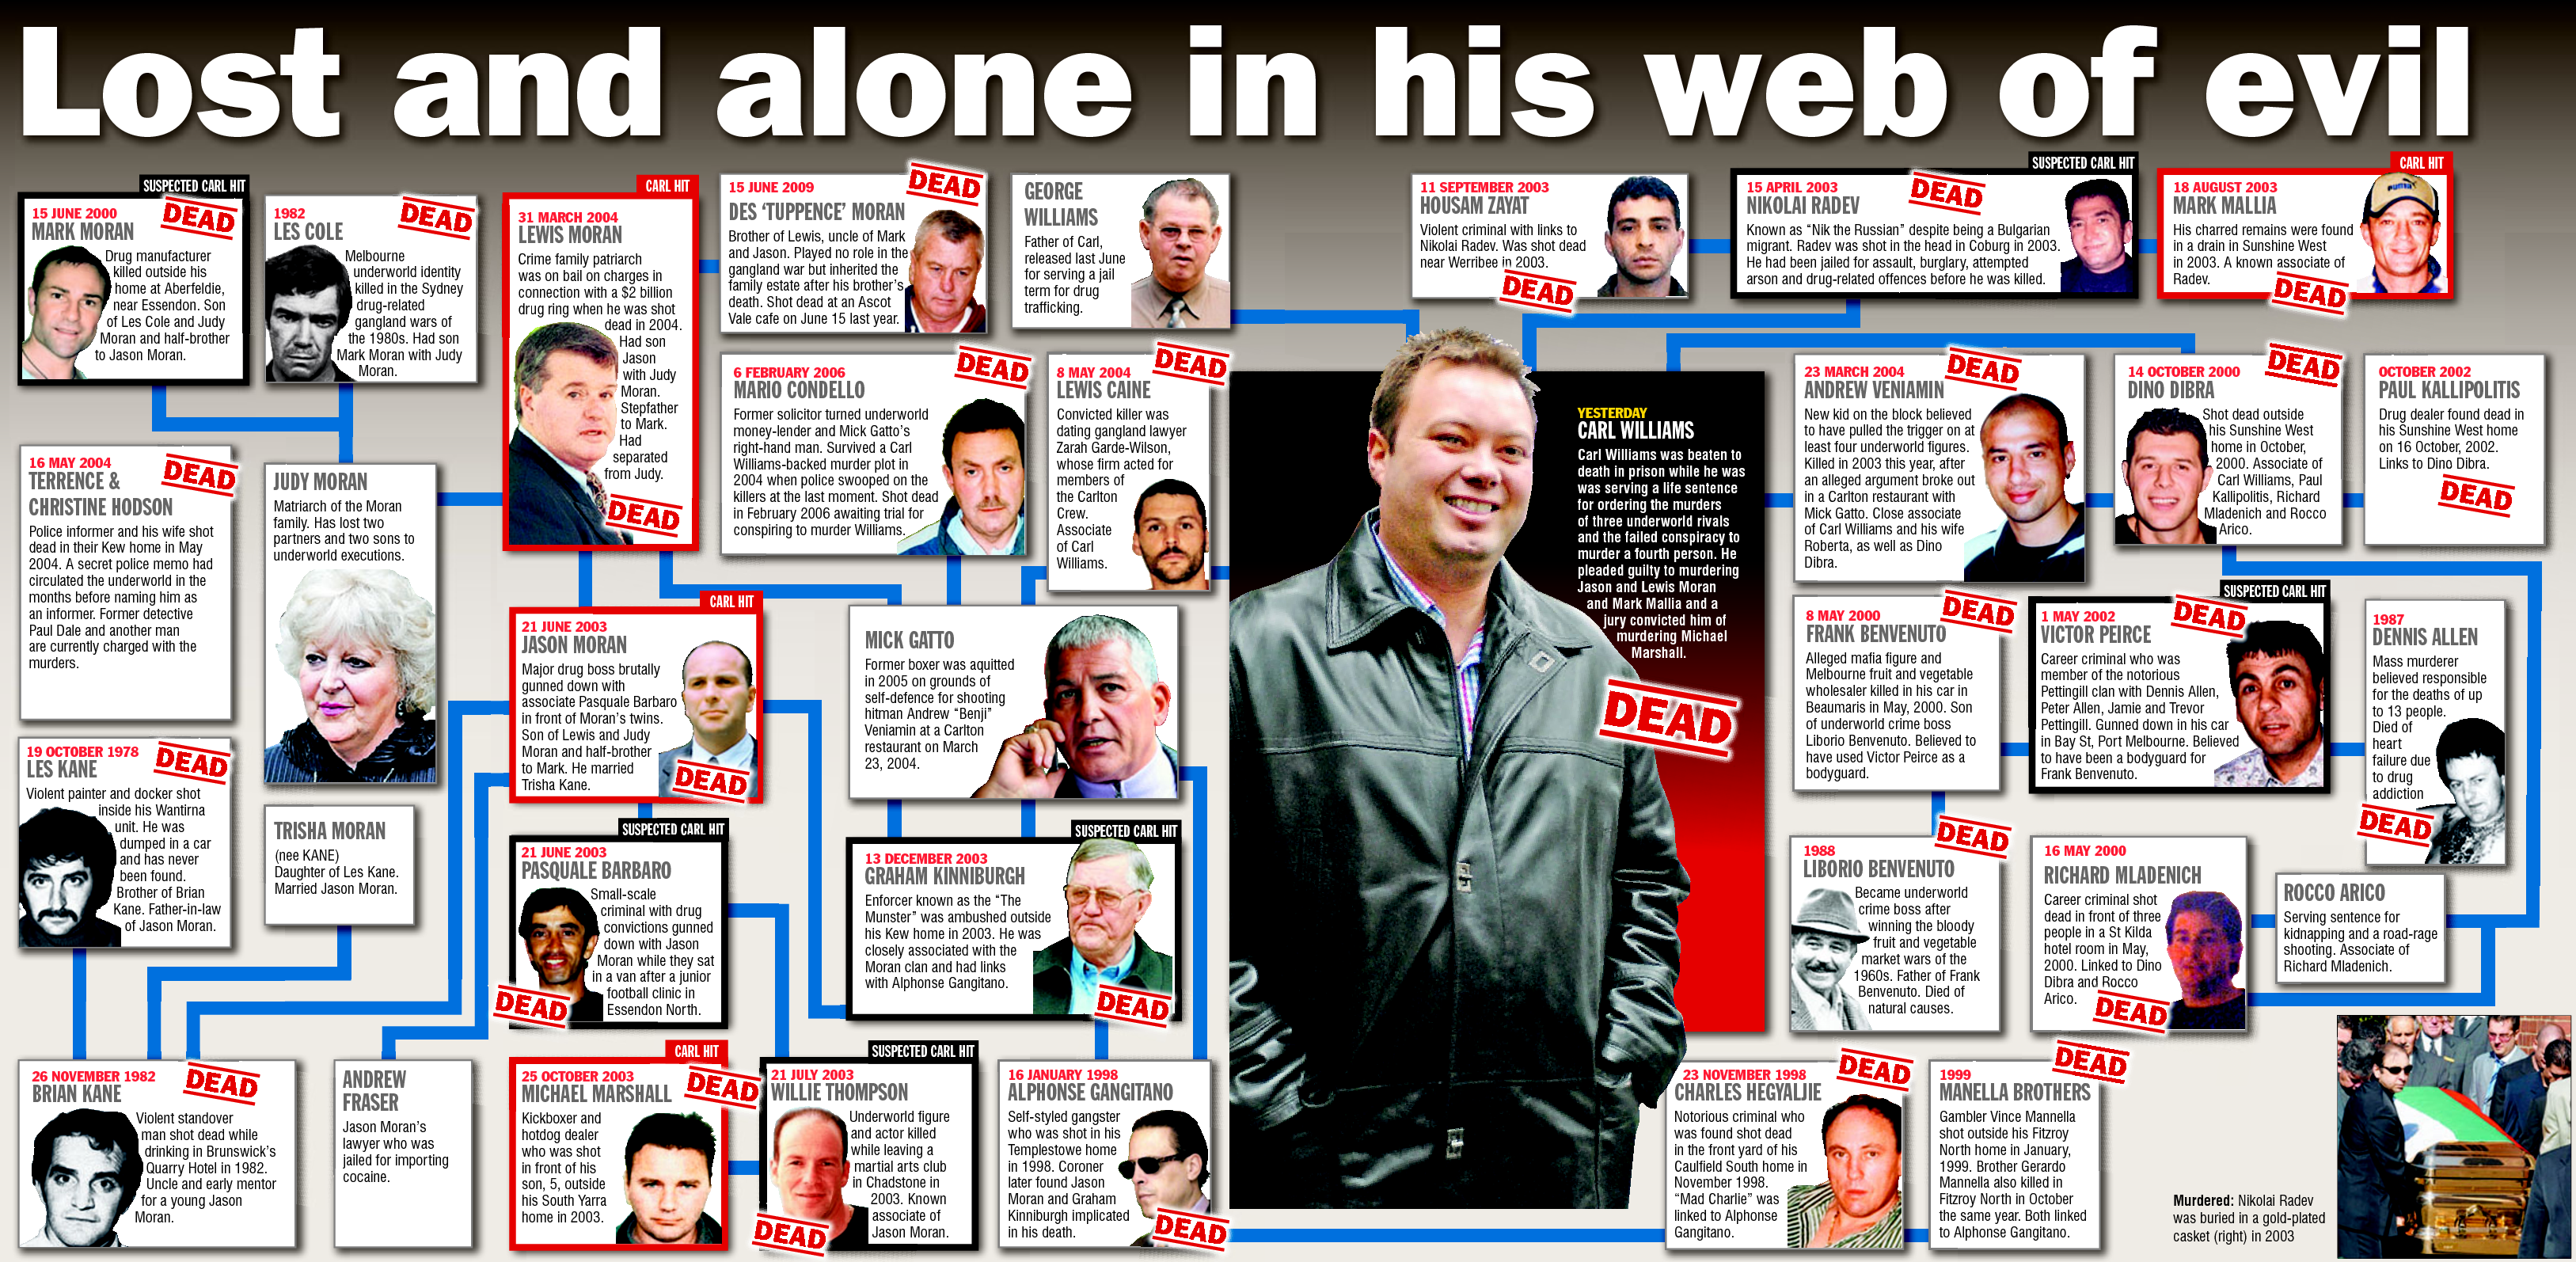 Lost and alone in his web of evil | Mobsters, Mafias, Gansters